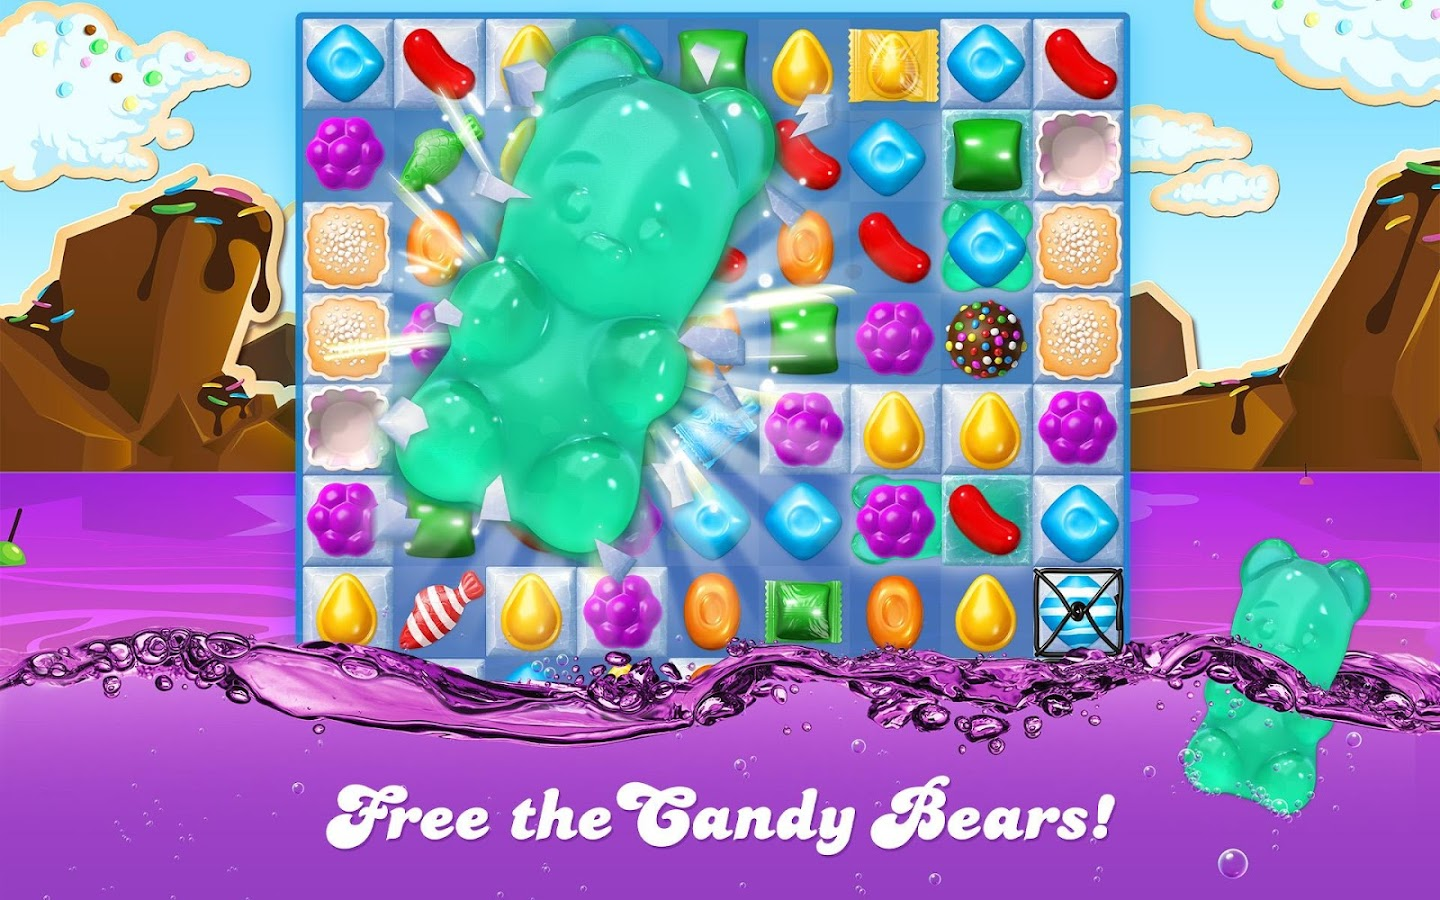 To Download Candy Crush Saga For PC,users need to install an Android Emulator like uctergiyfon.gq Xeplayer,you can Download Candy Crush Saga for PC version on your Windows 7,8,10 and Laptop.